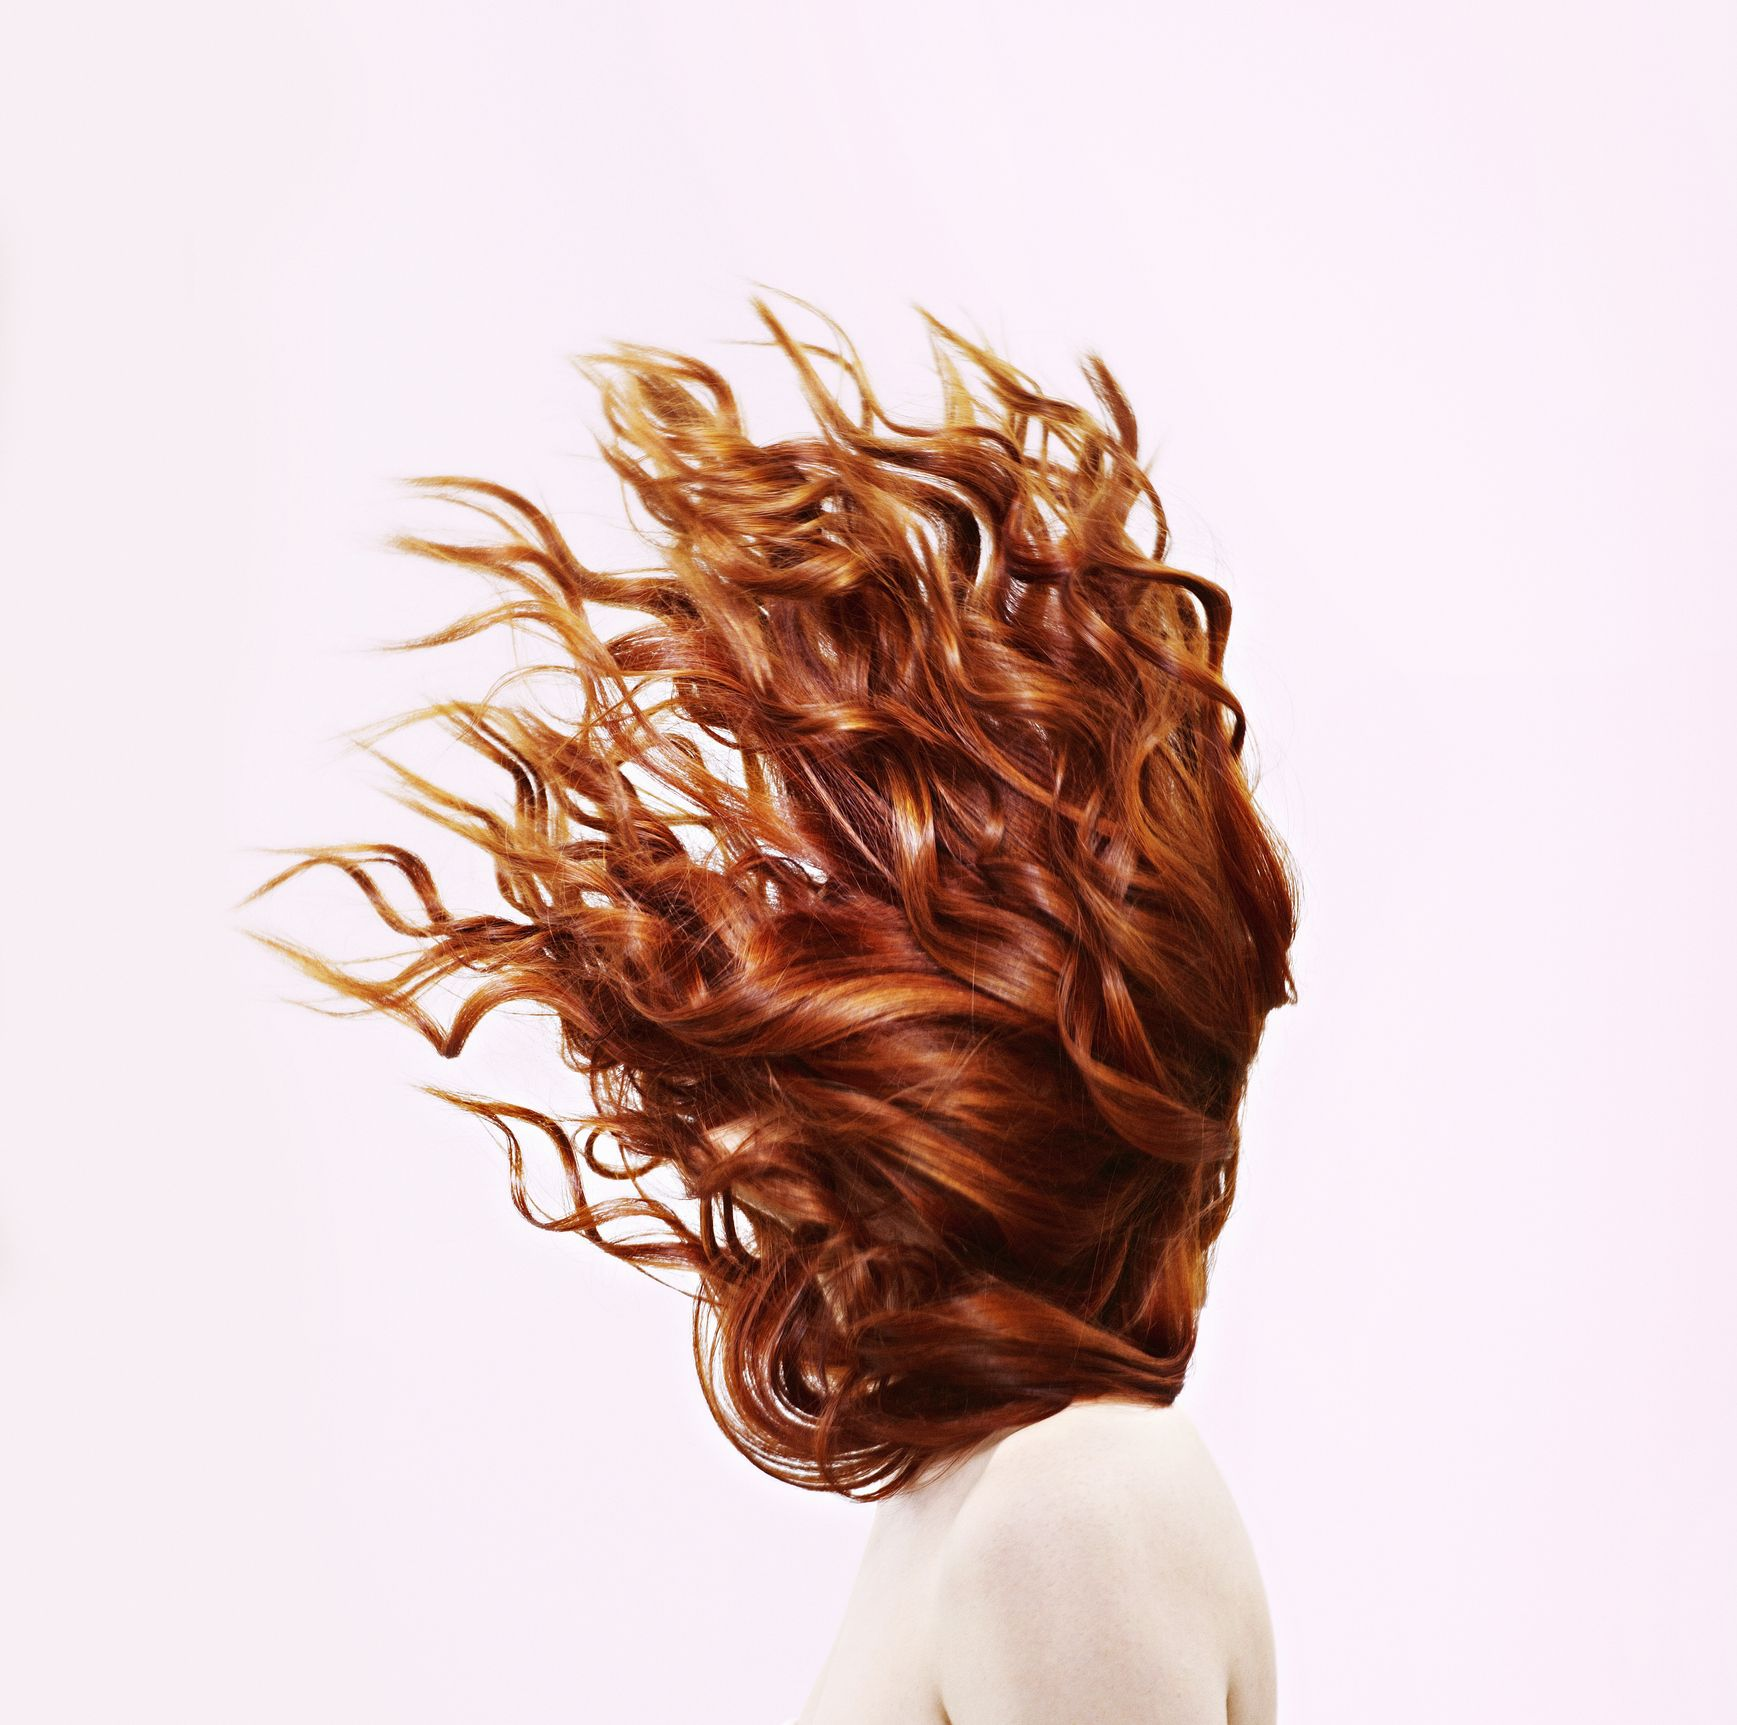 How to make your natural hair grow long and soft